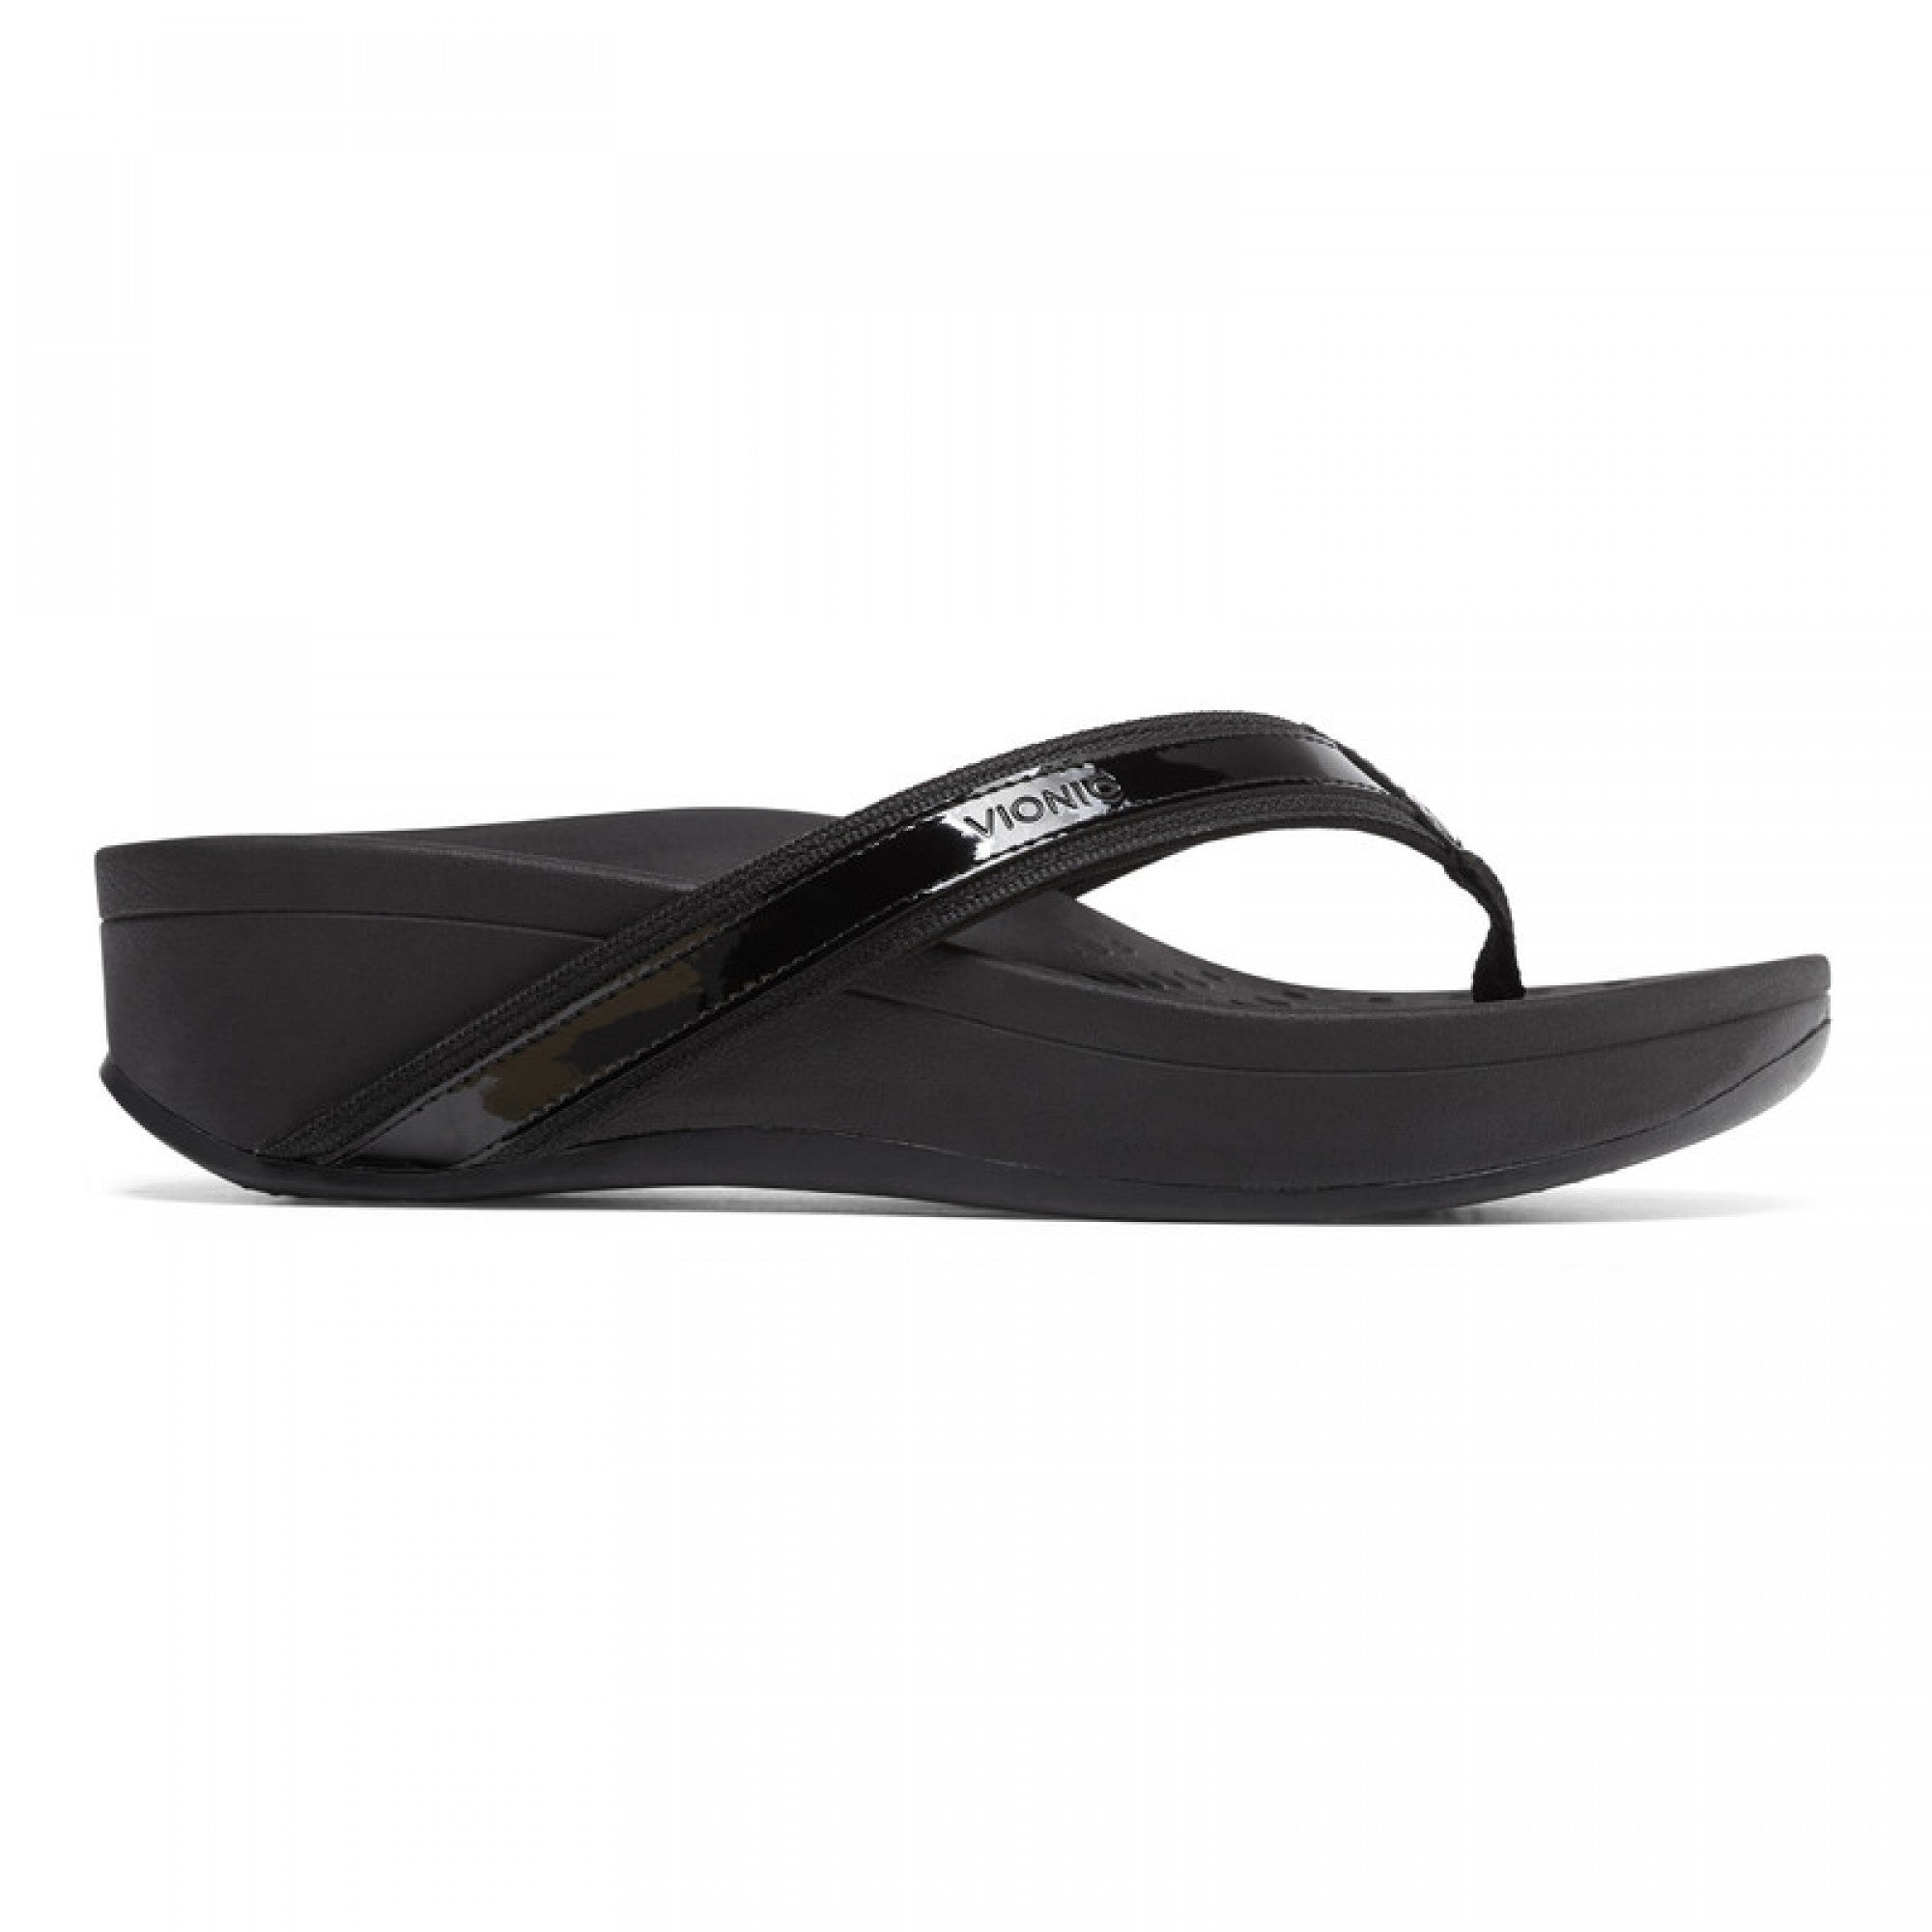 High Tide Platform Sandal - Black